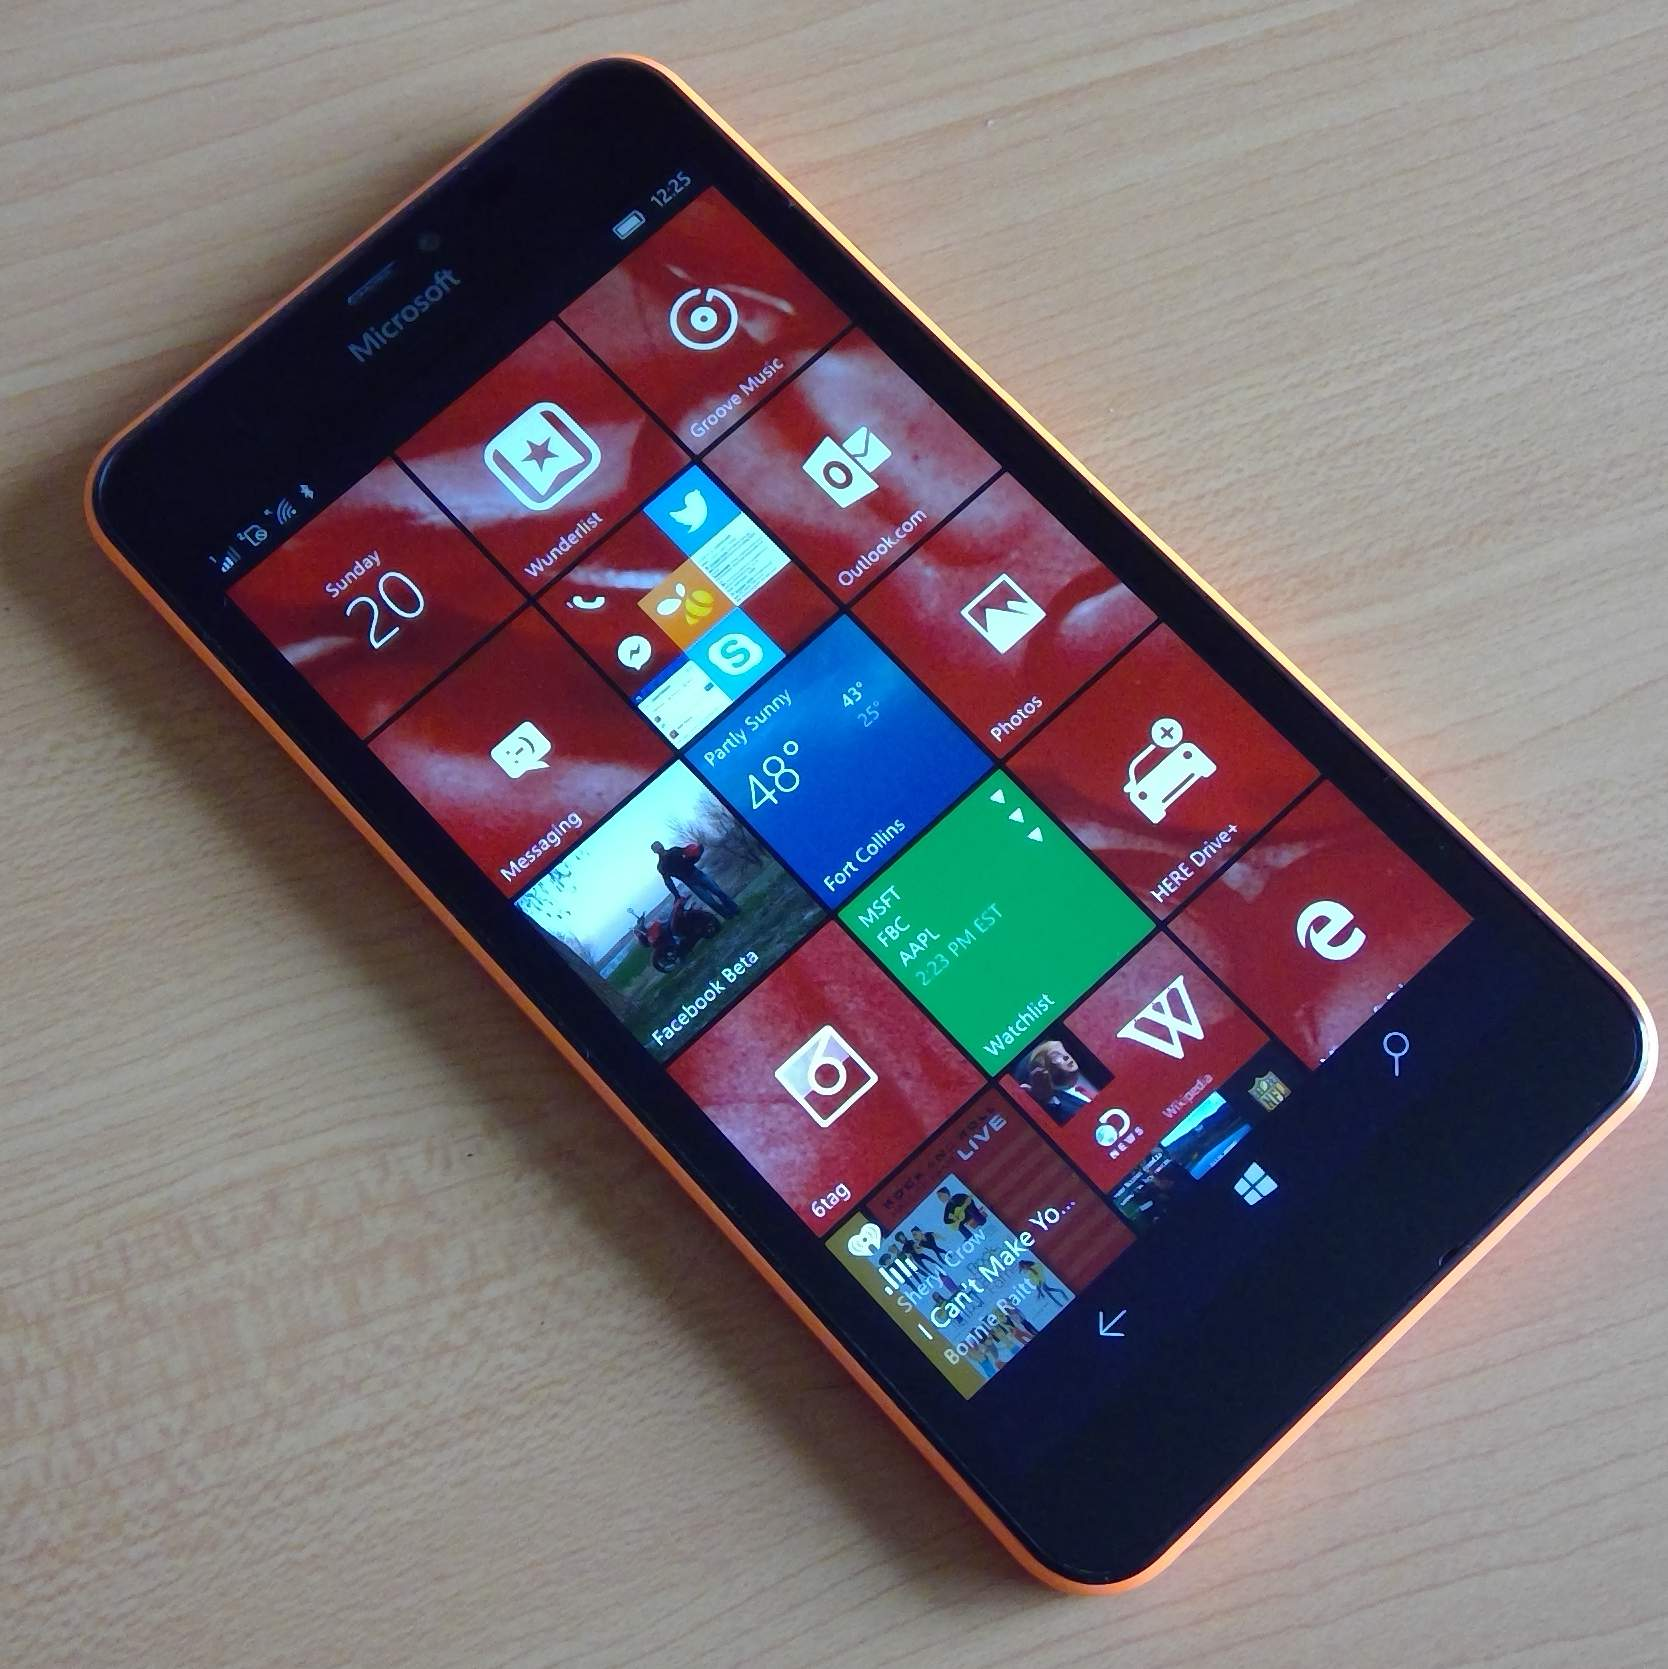 orange Microsoft Lumia 640 XL, red live tiles, Windows 10 Mobile